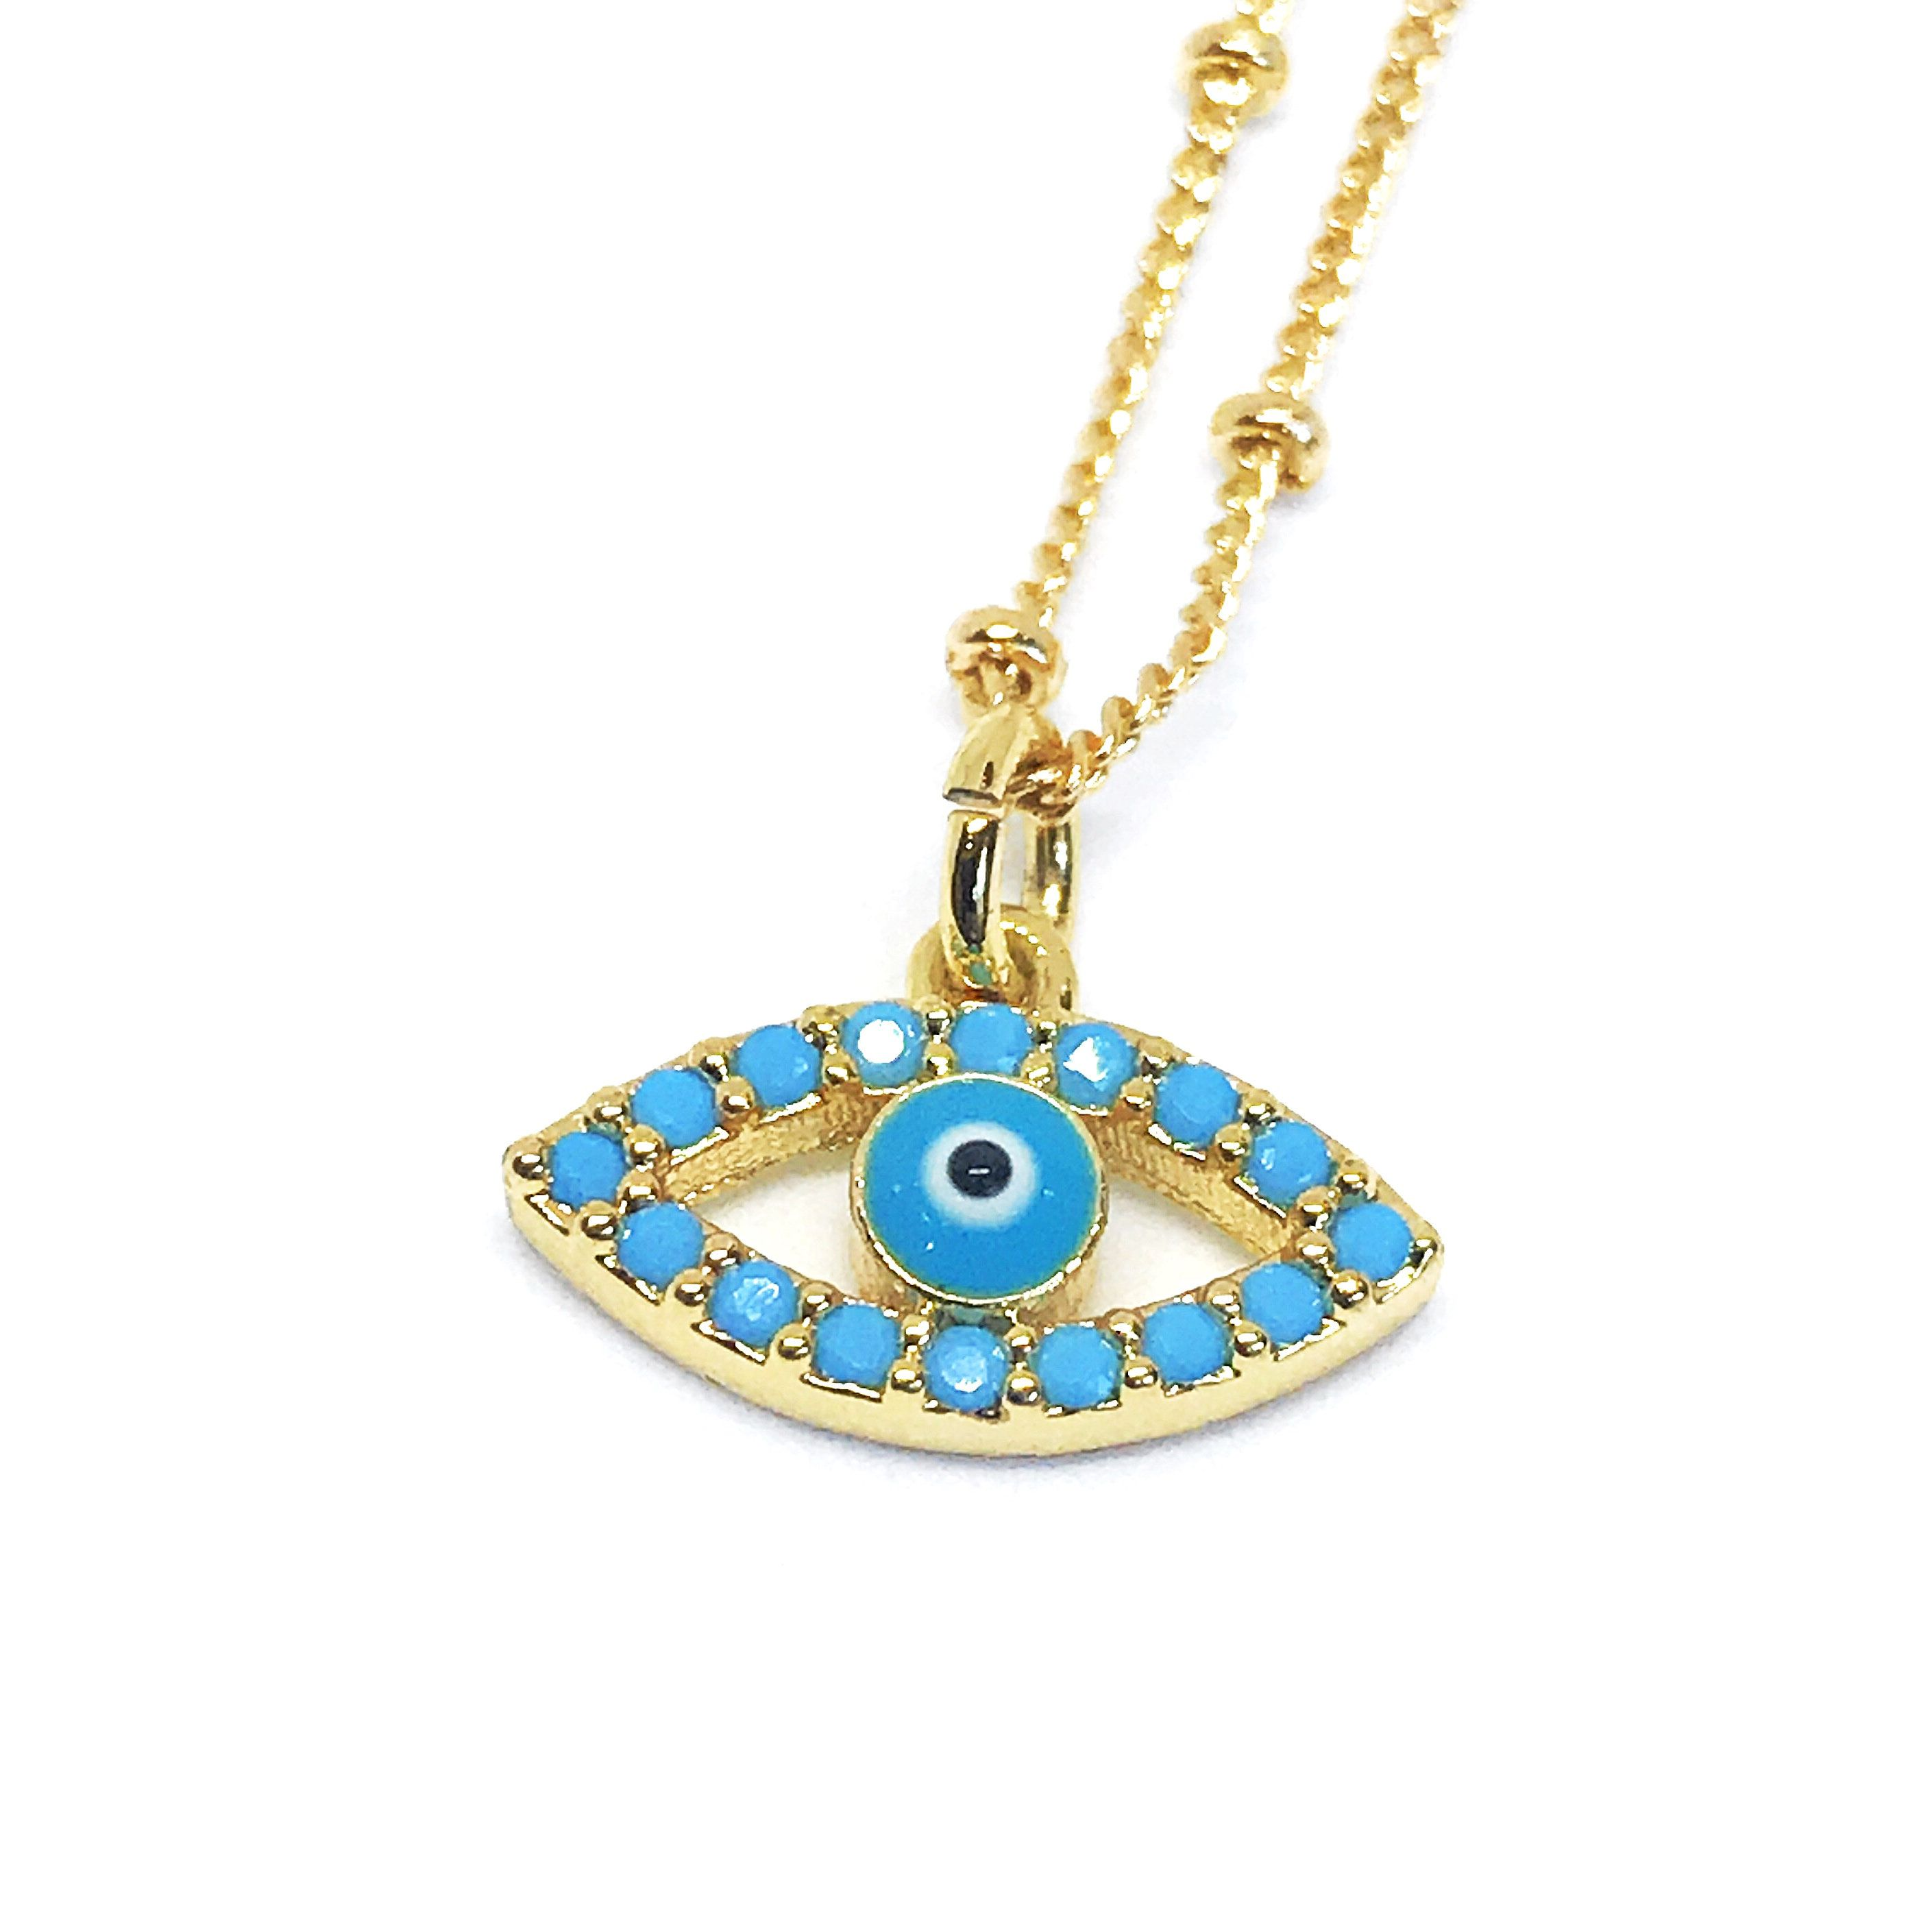 Evil eye jewelry evil eye charm evil eye necklace gold dainty excited to share the latest addition to my etsy shop evil eye jewelry aloadofball Choice Image